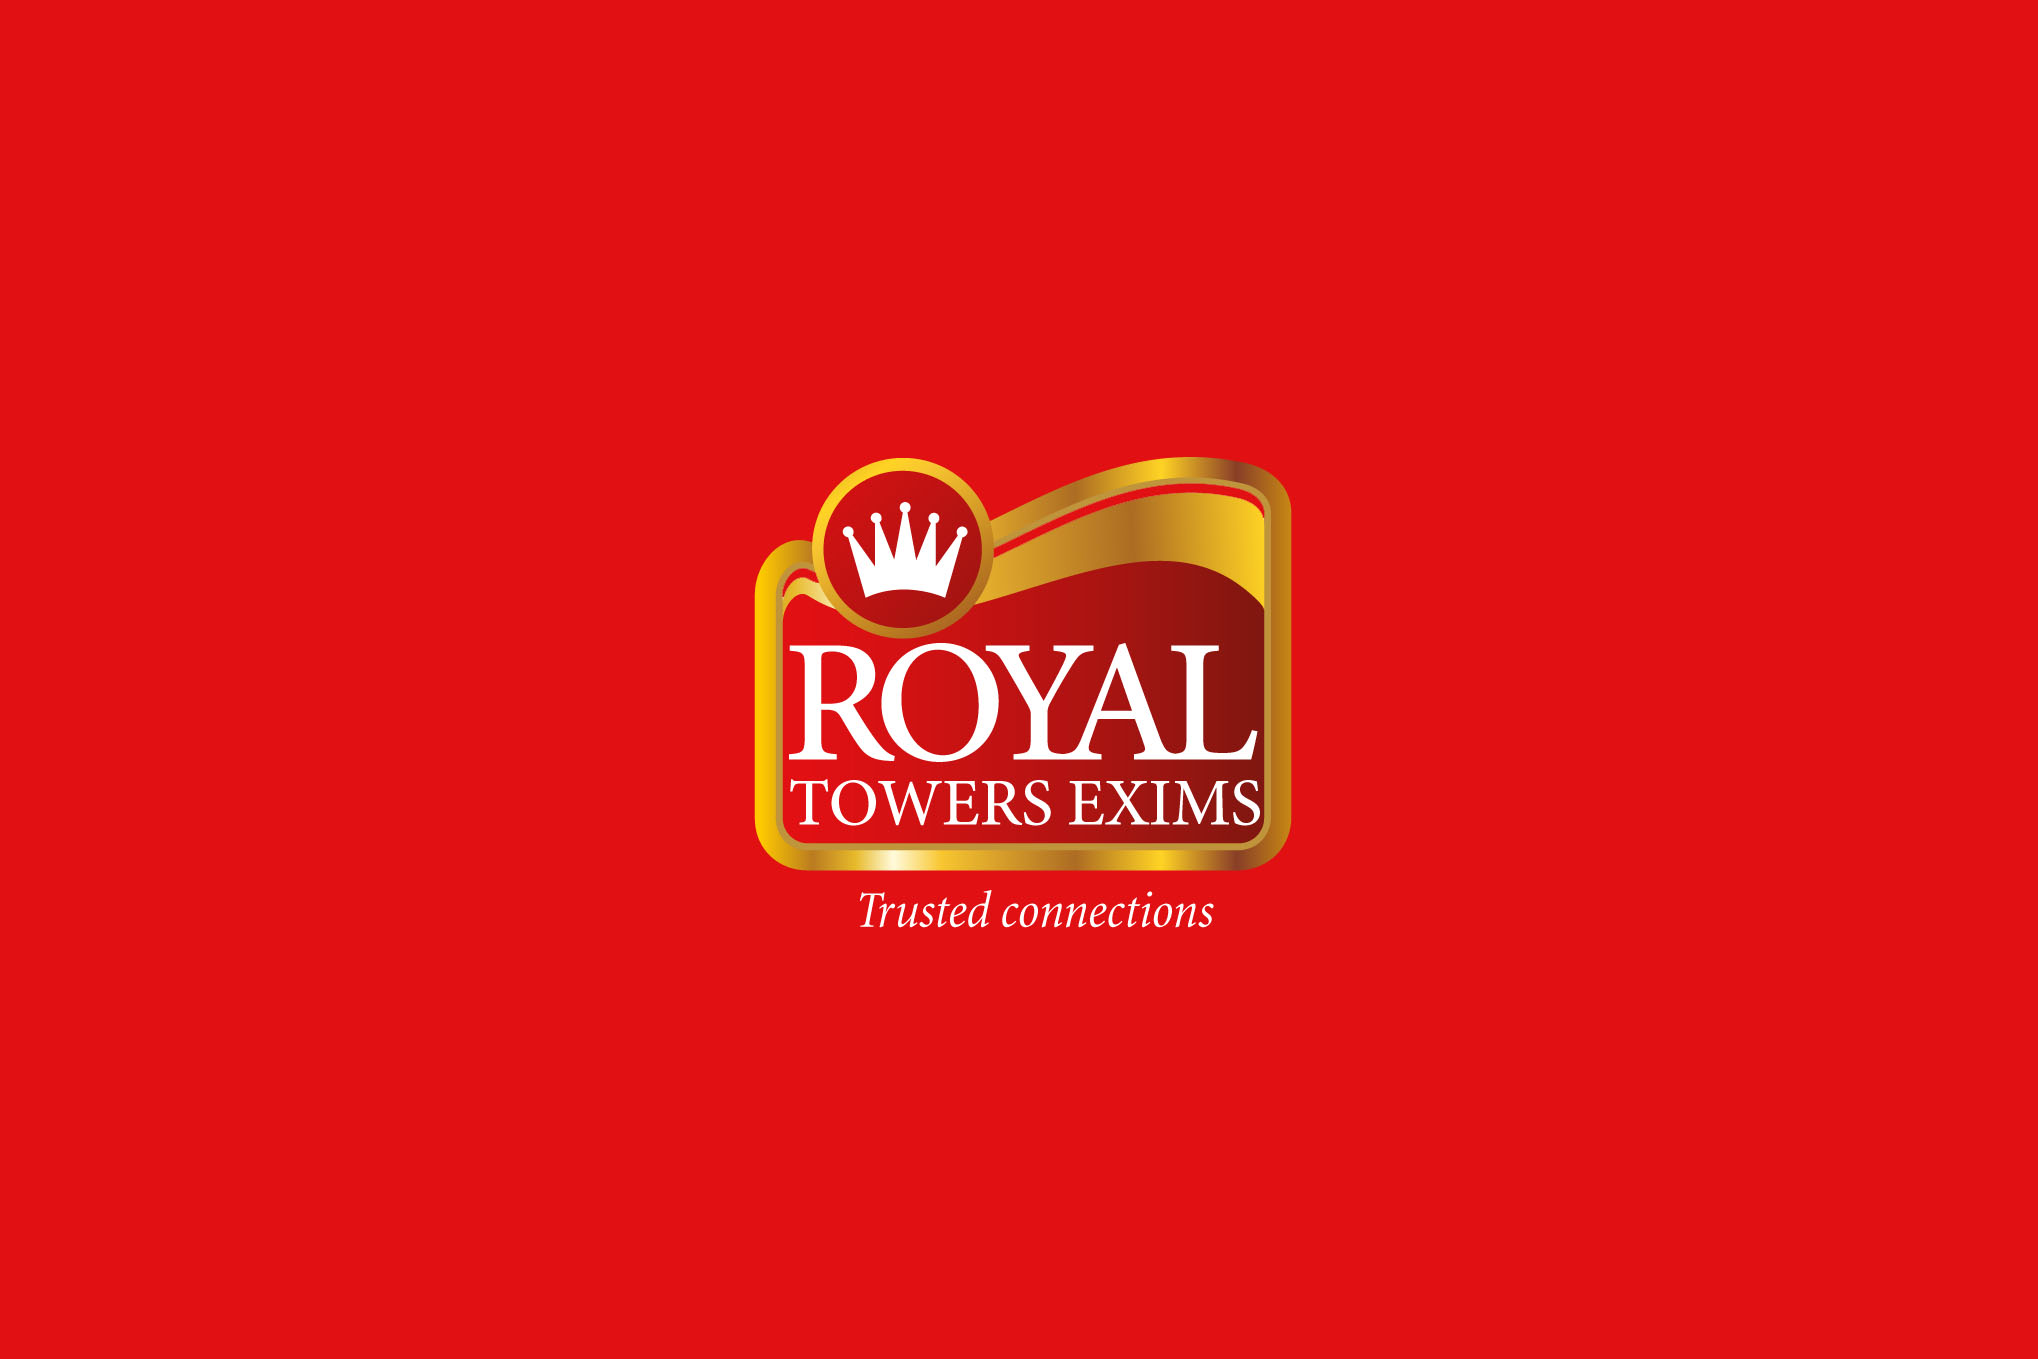 Royal Towers